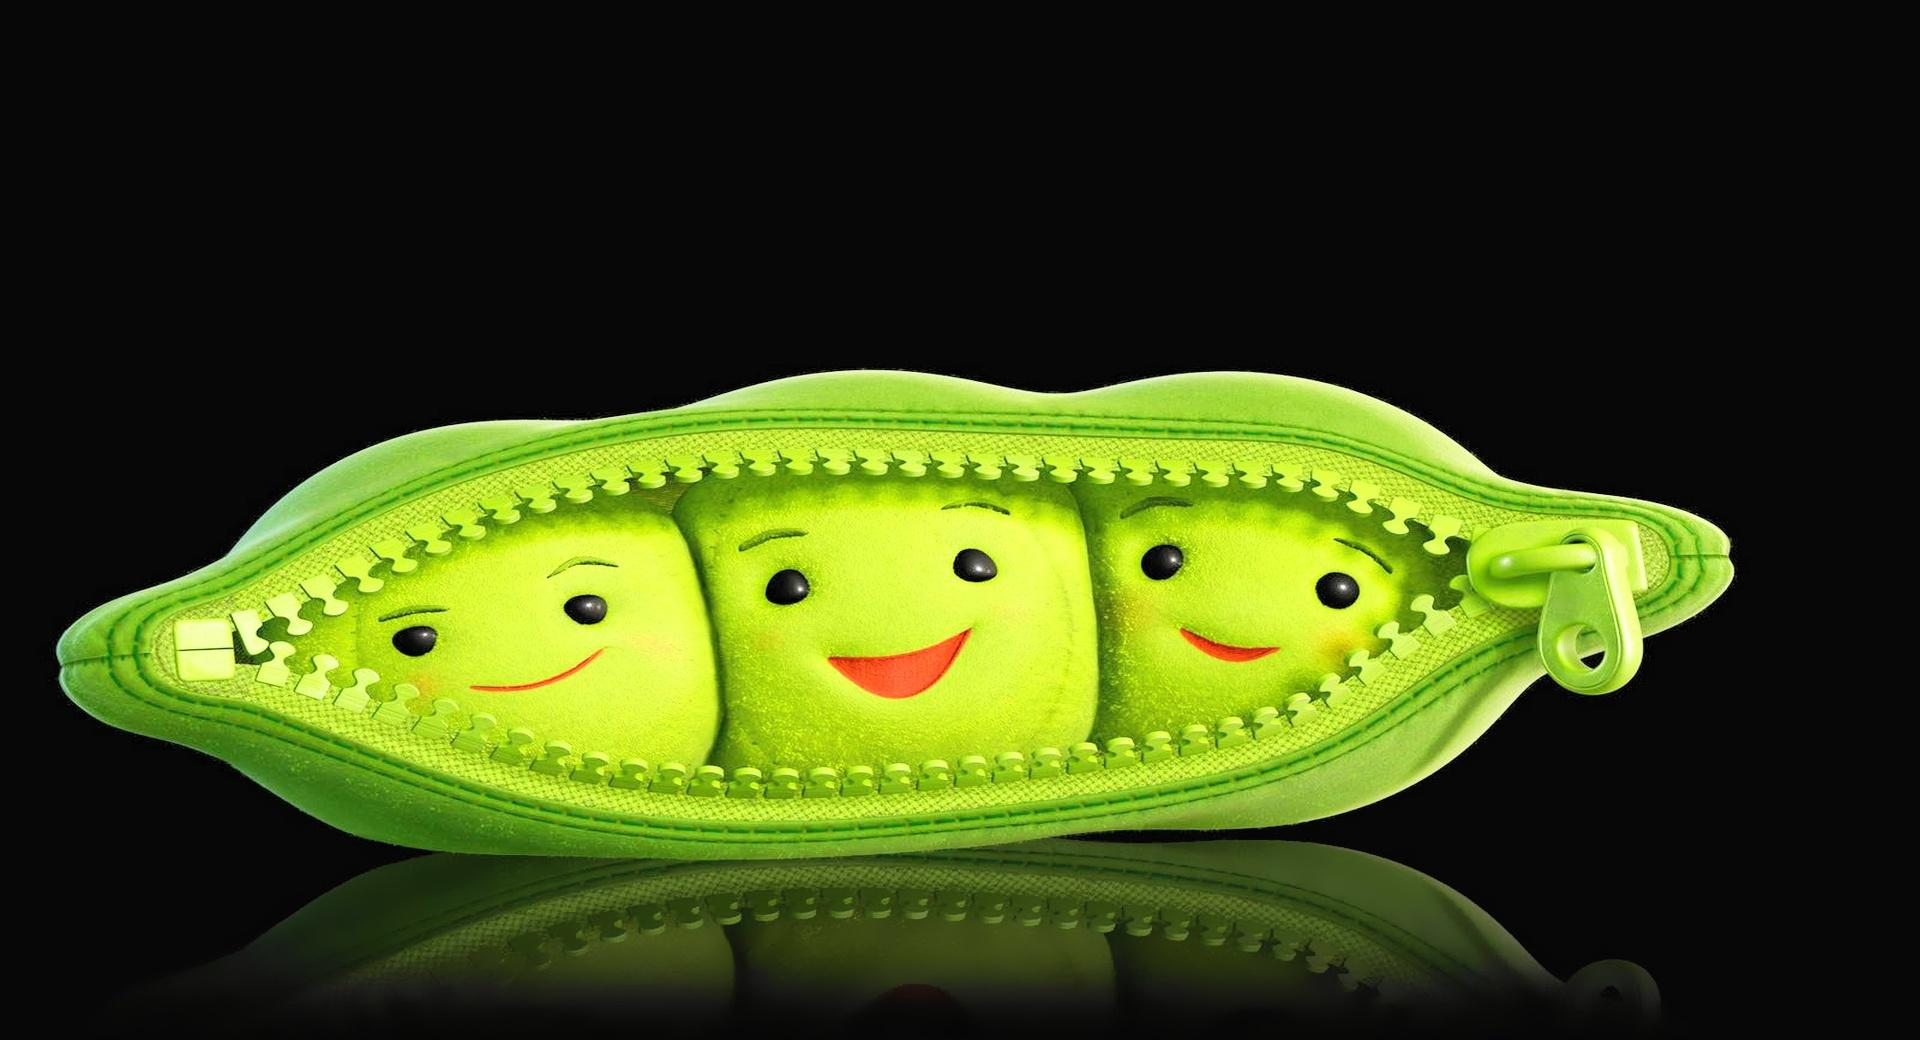 Pea Cute By K23 wallpapers HD quality